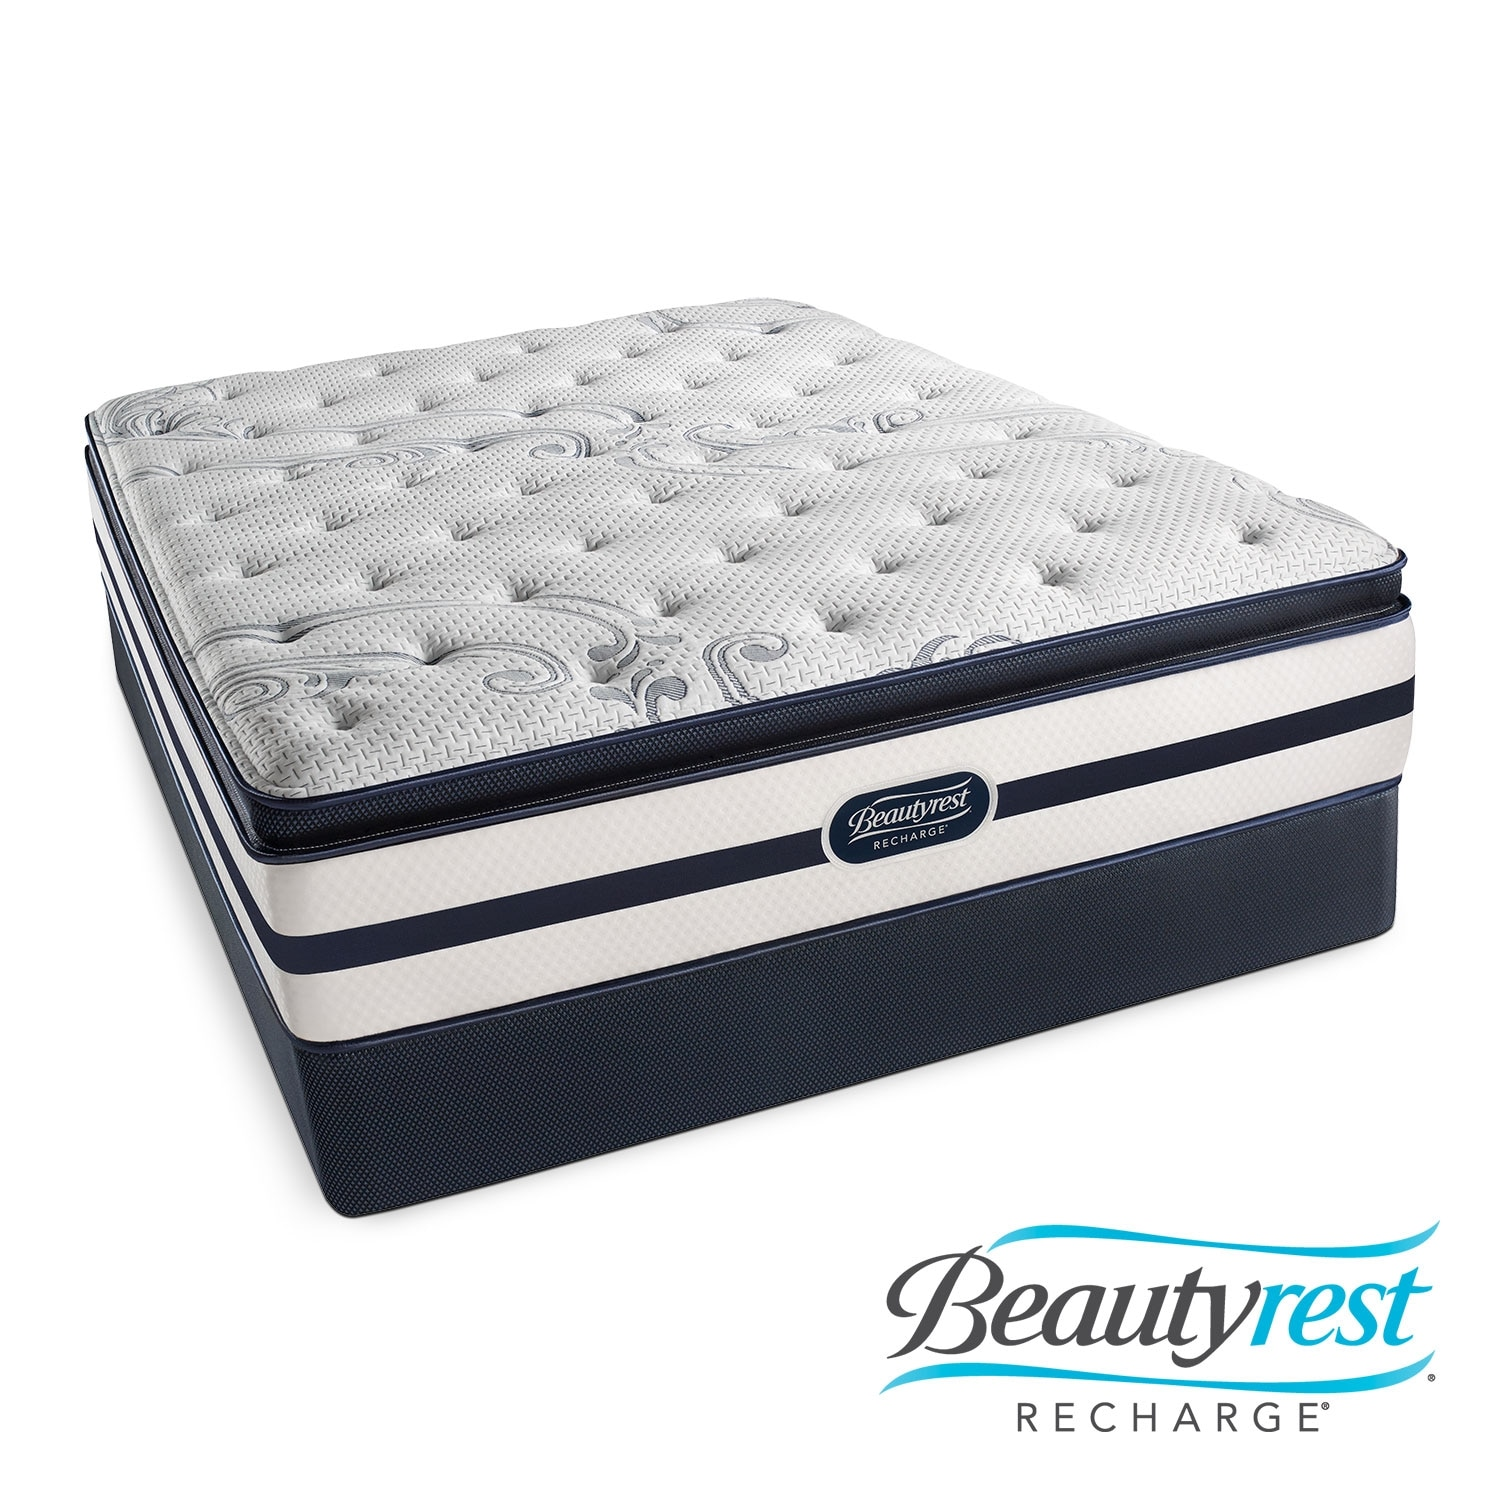 Mattresses and Bedding - Alisa Plush PT California King Mattress/Split Foundation Set